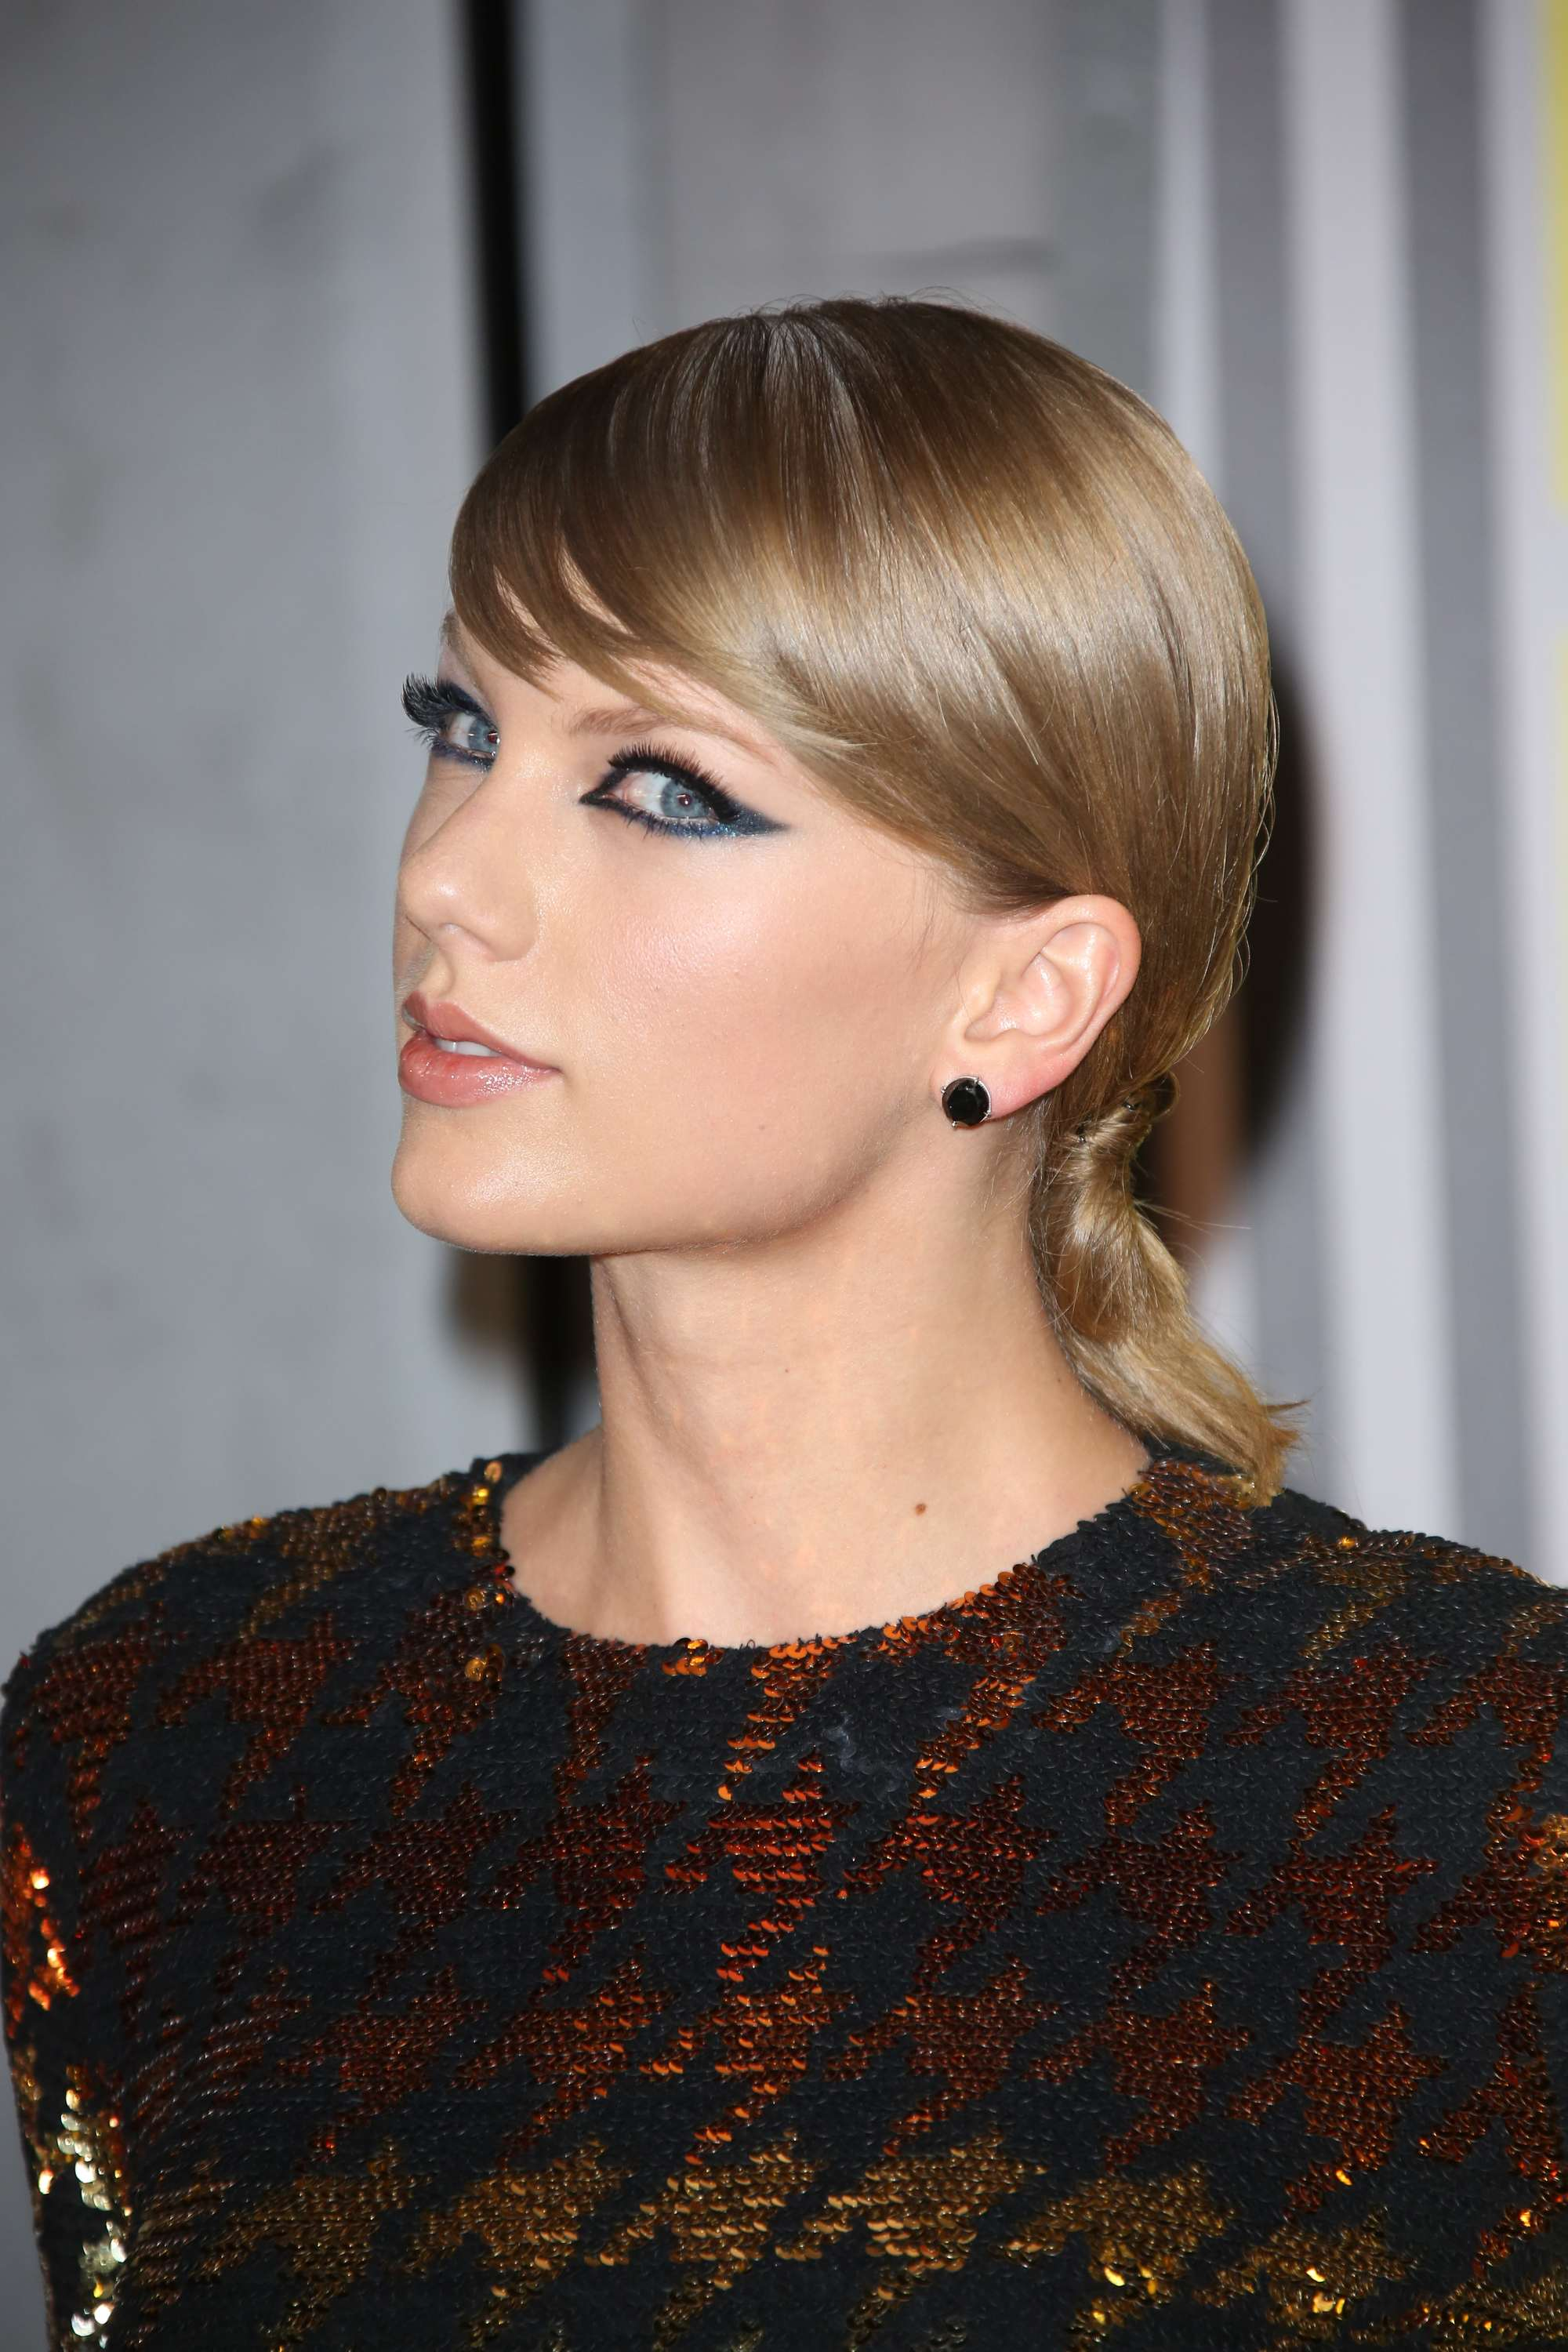 Dirty blonde hair - Taylor Swift smooth low updo with sweeping side bangs